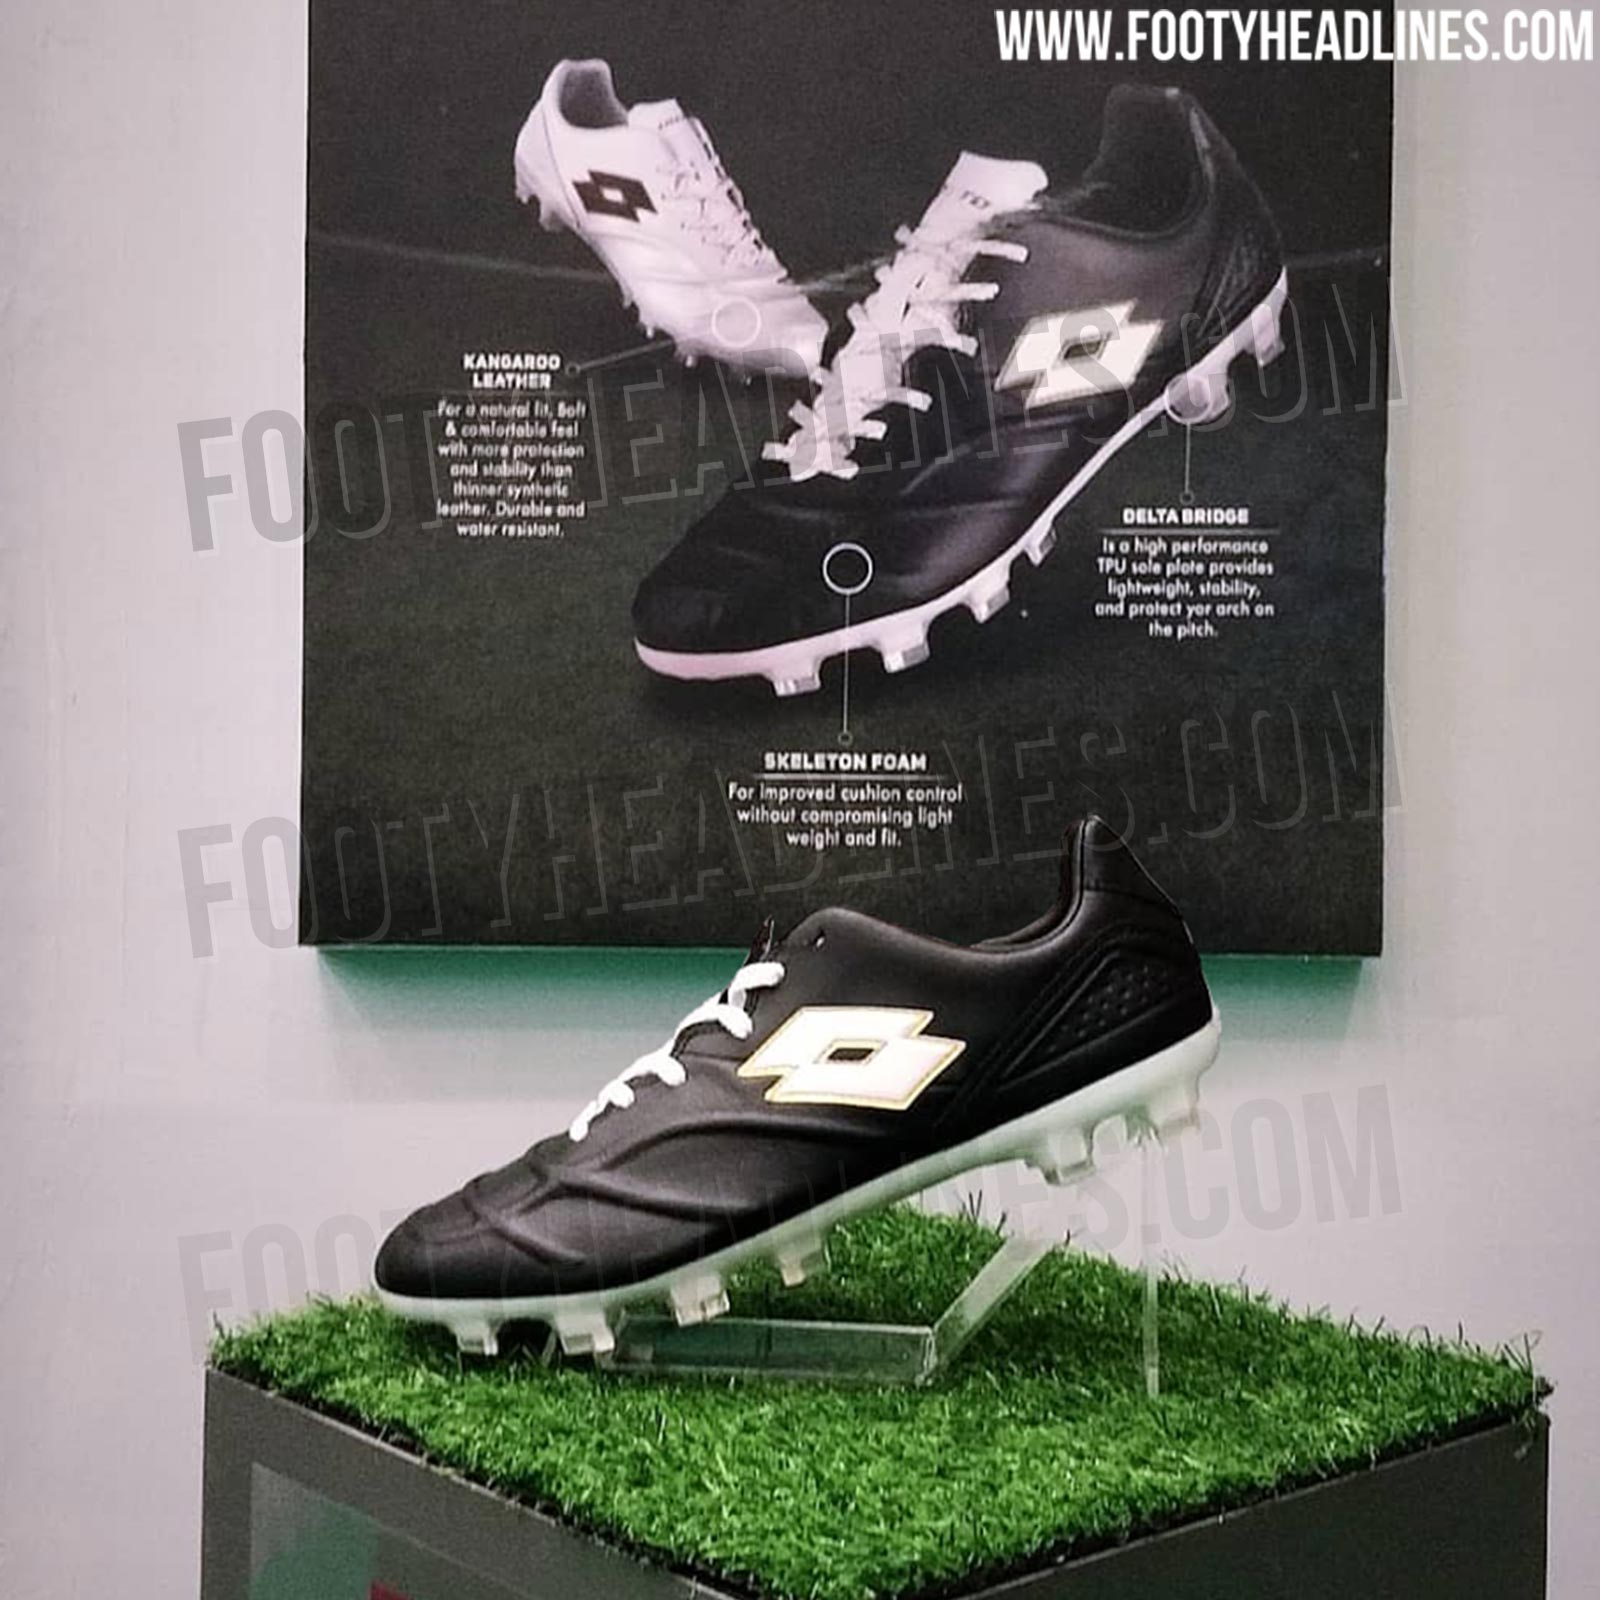 The Lotto Capolista will be Lotto s first-ever leather football boot  without traditional stitching 2a62b7c97